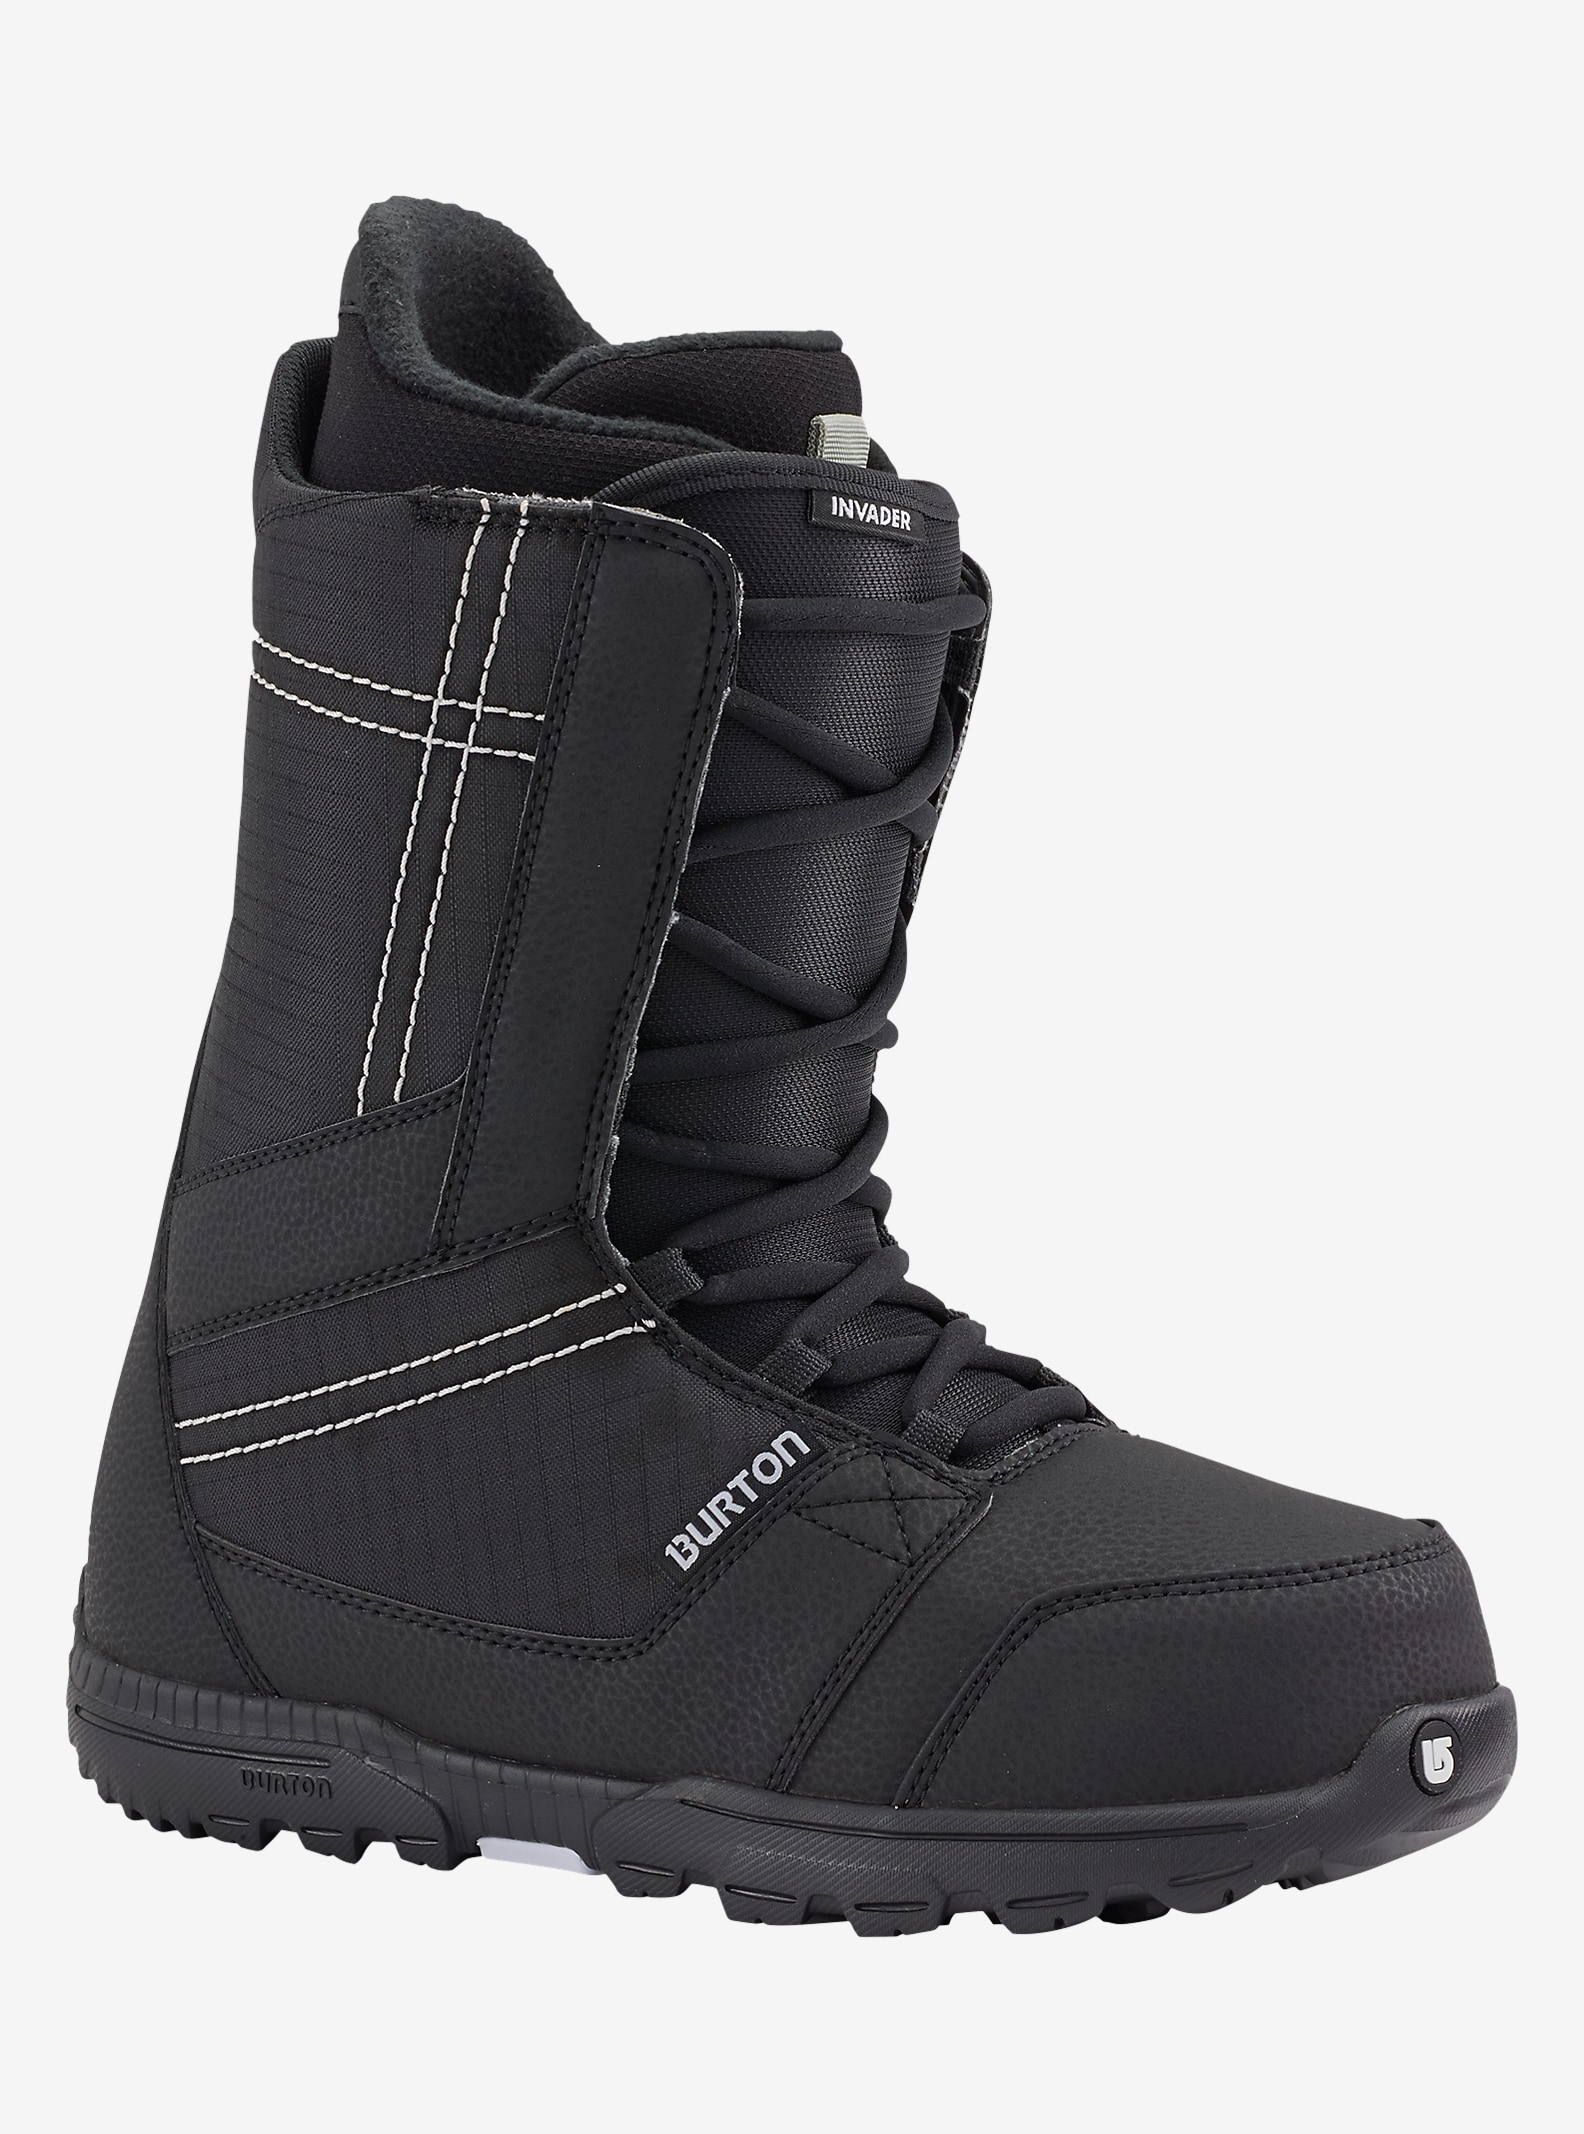 Burton Invader Snowboard Boot shown in Black